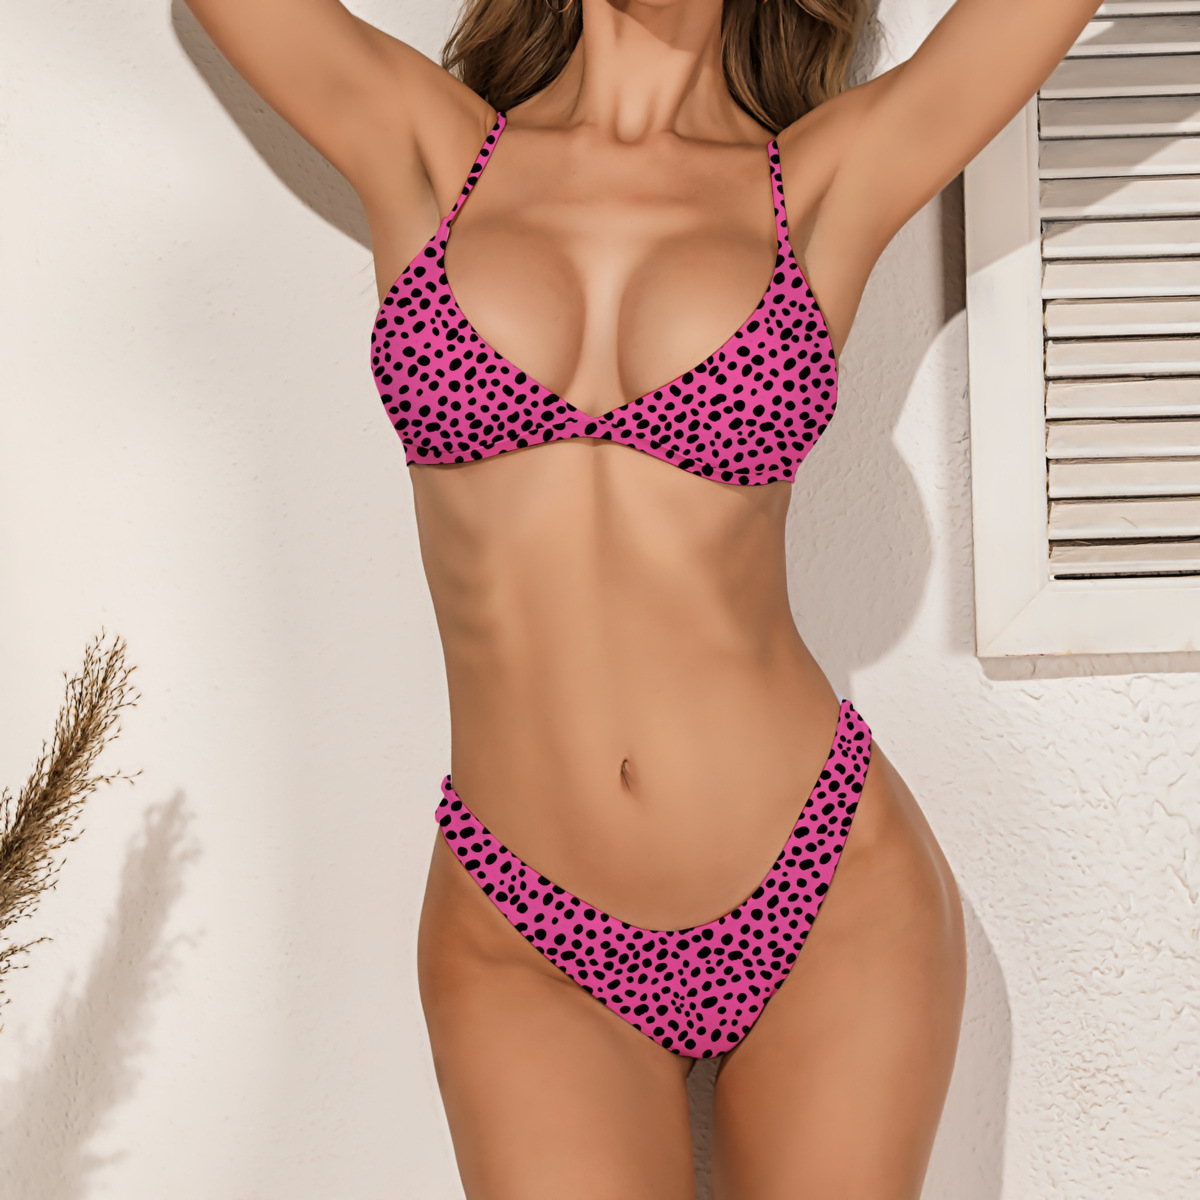 Dot Print Women's Swimsuit 2020 Summer Sexy Leopard Low Waist Swimwear Women Bikini Set Push-Up Beachwear Ladies Bathing Suit